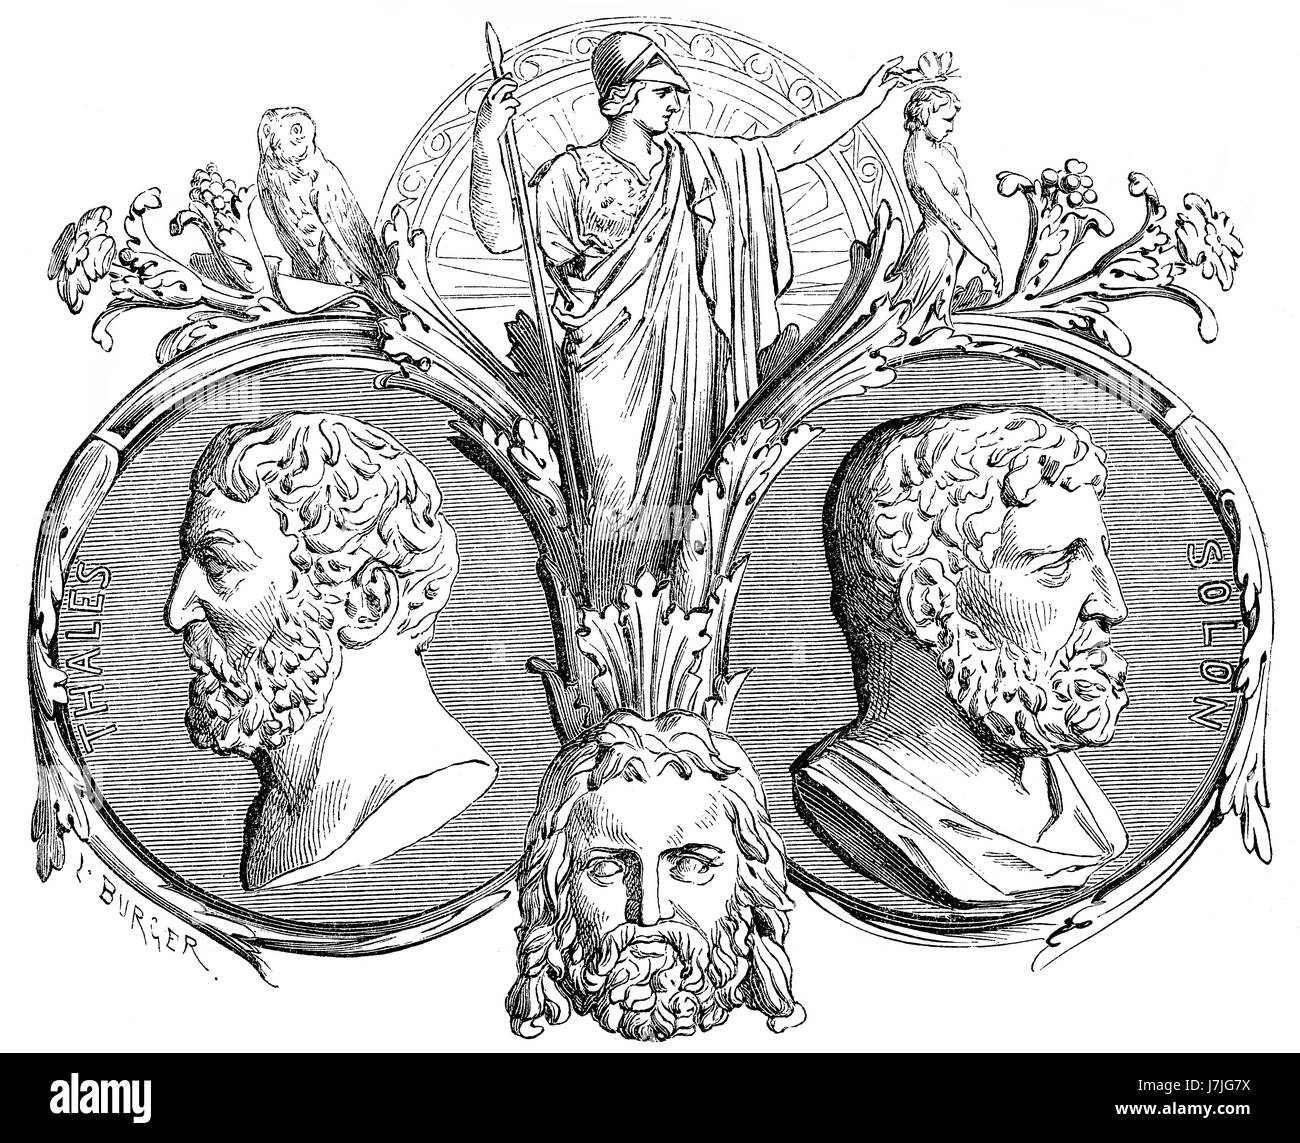 Solon and Thales of Miletus, part of the Seven Sages of Ancient Greece - Stock Image